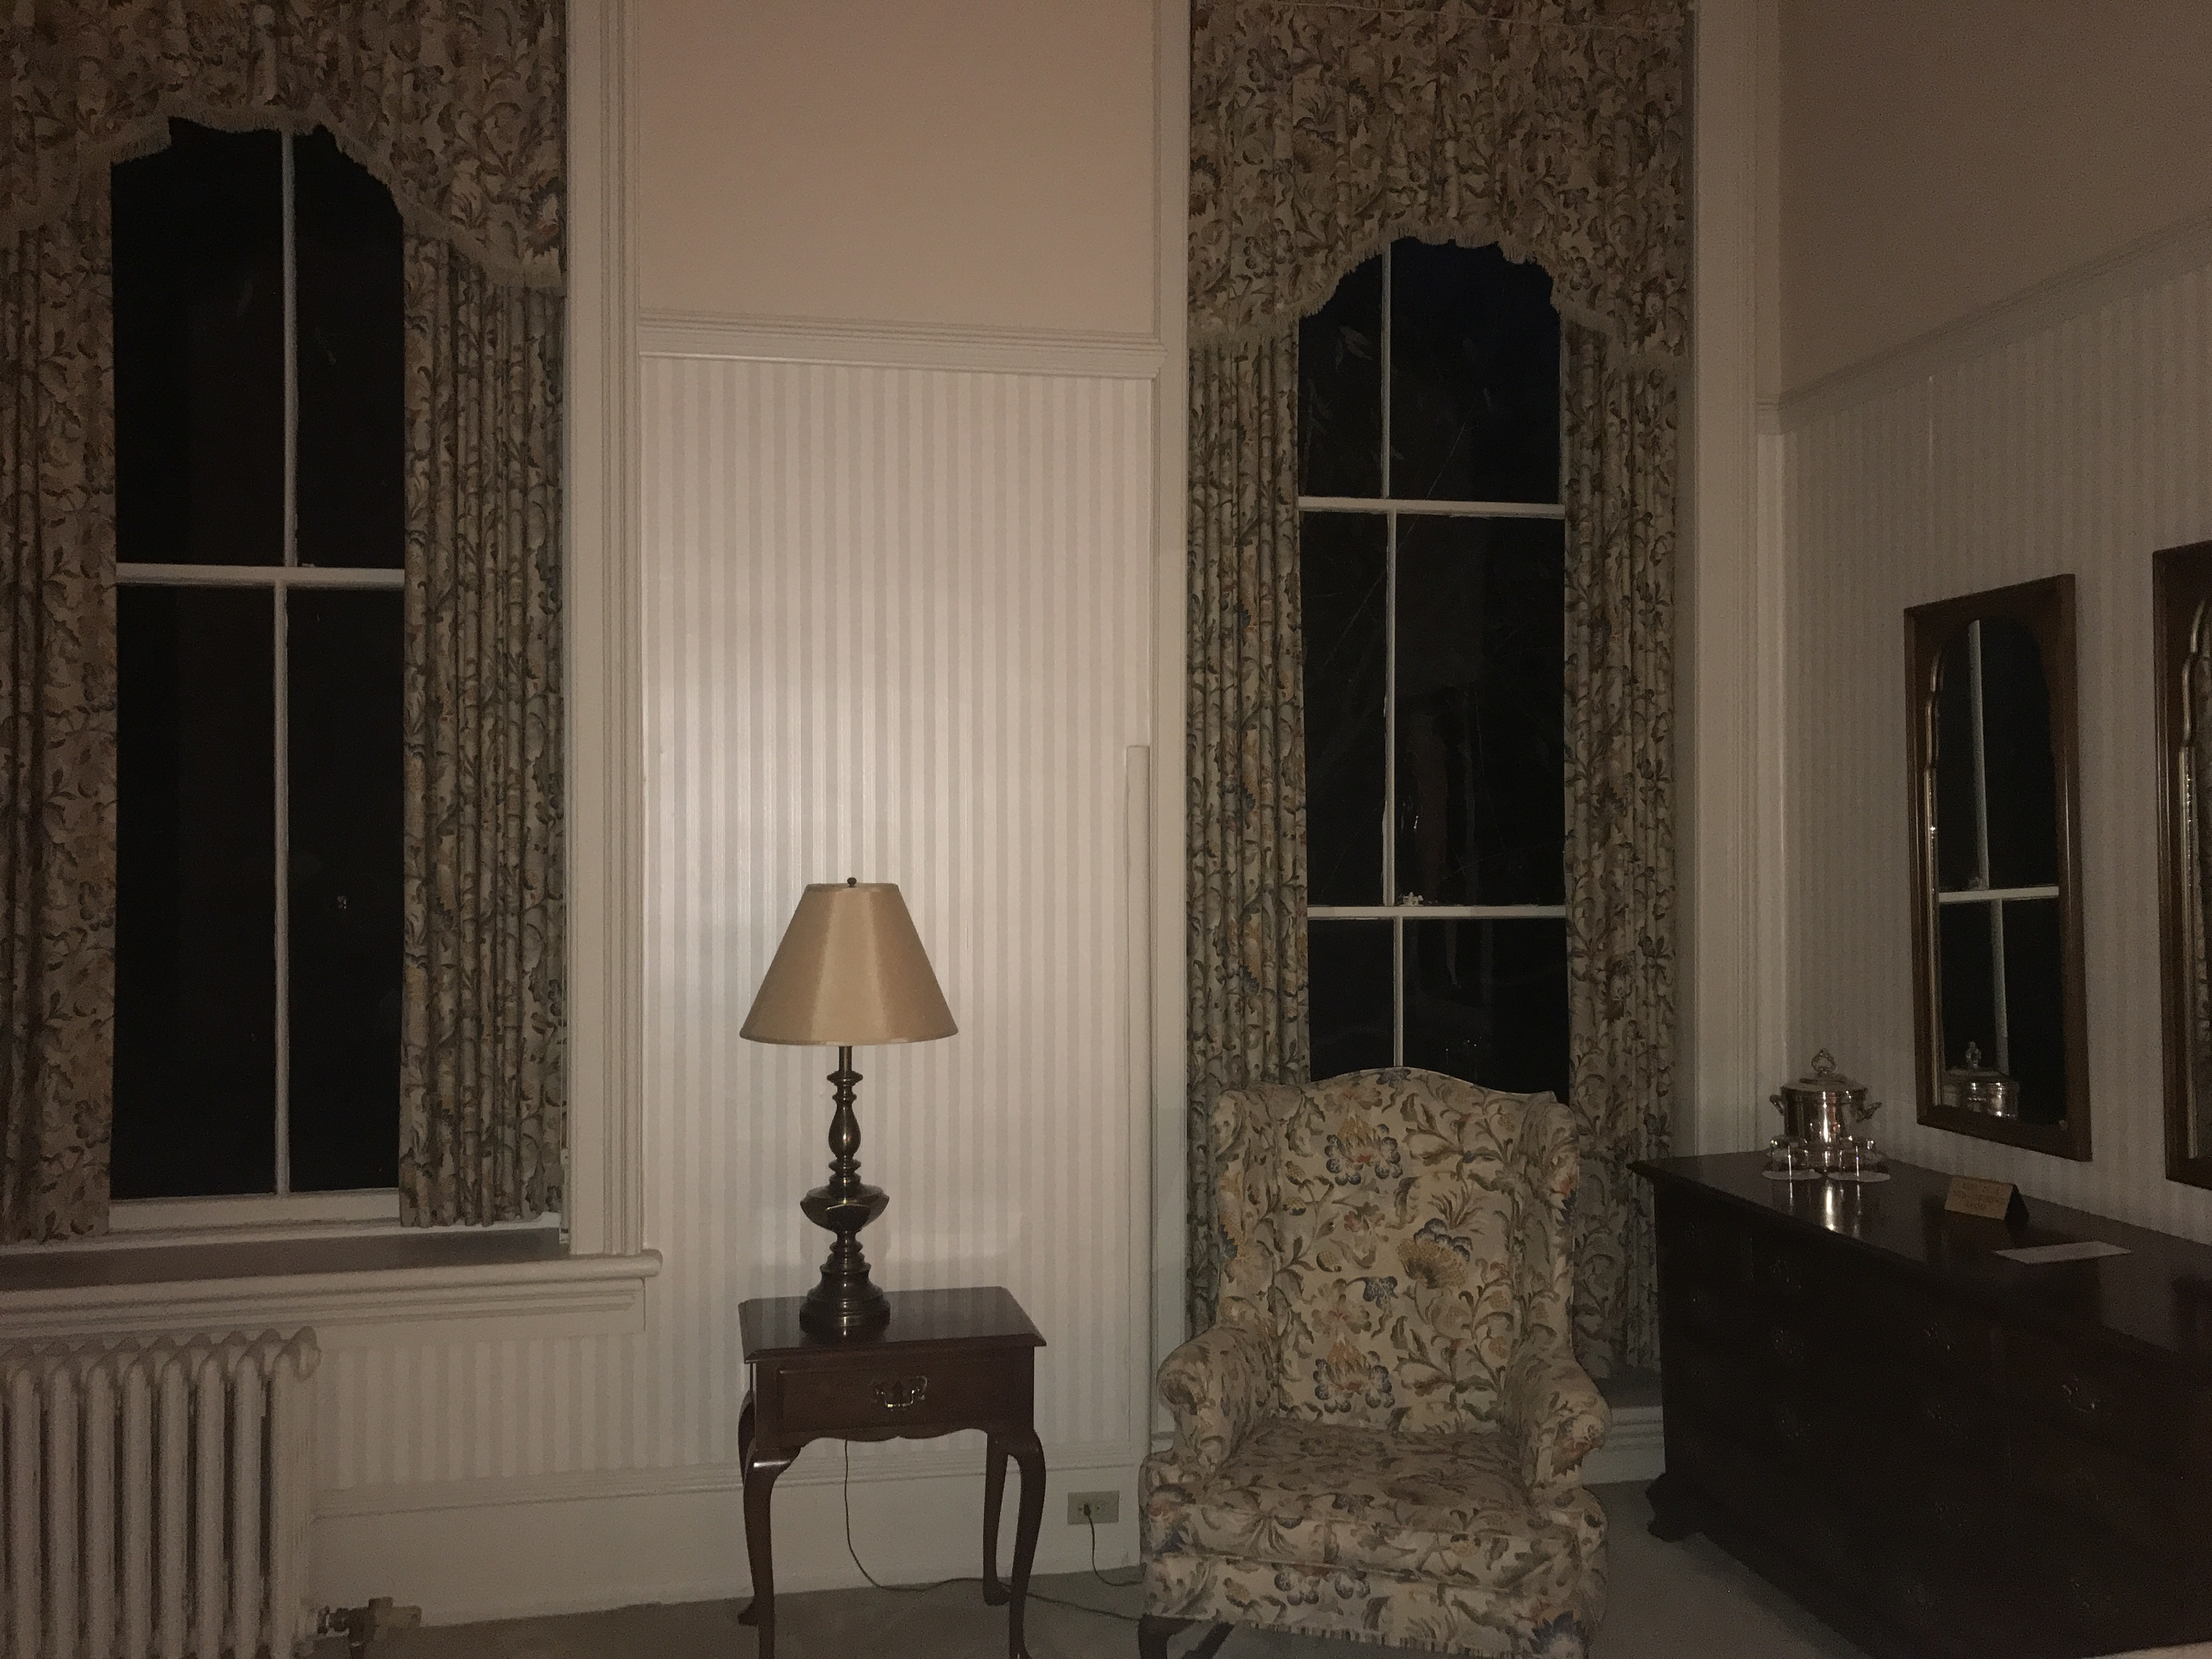 Oneida Room – A bedroom available for overnight stay in the Mansion House features very high ceilings, floral curtains, striped wallpaper, and an easy chair.